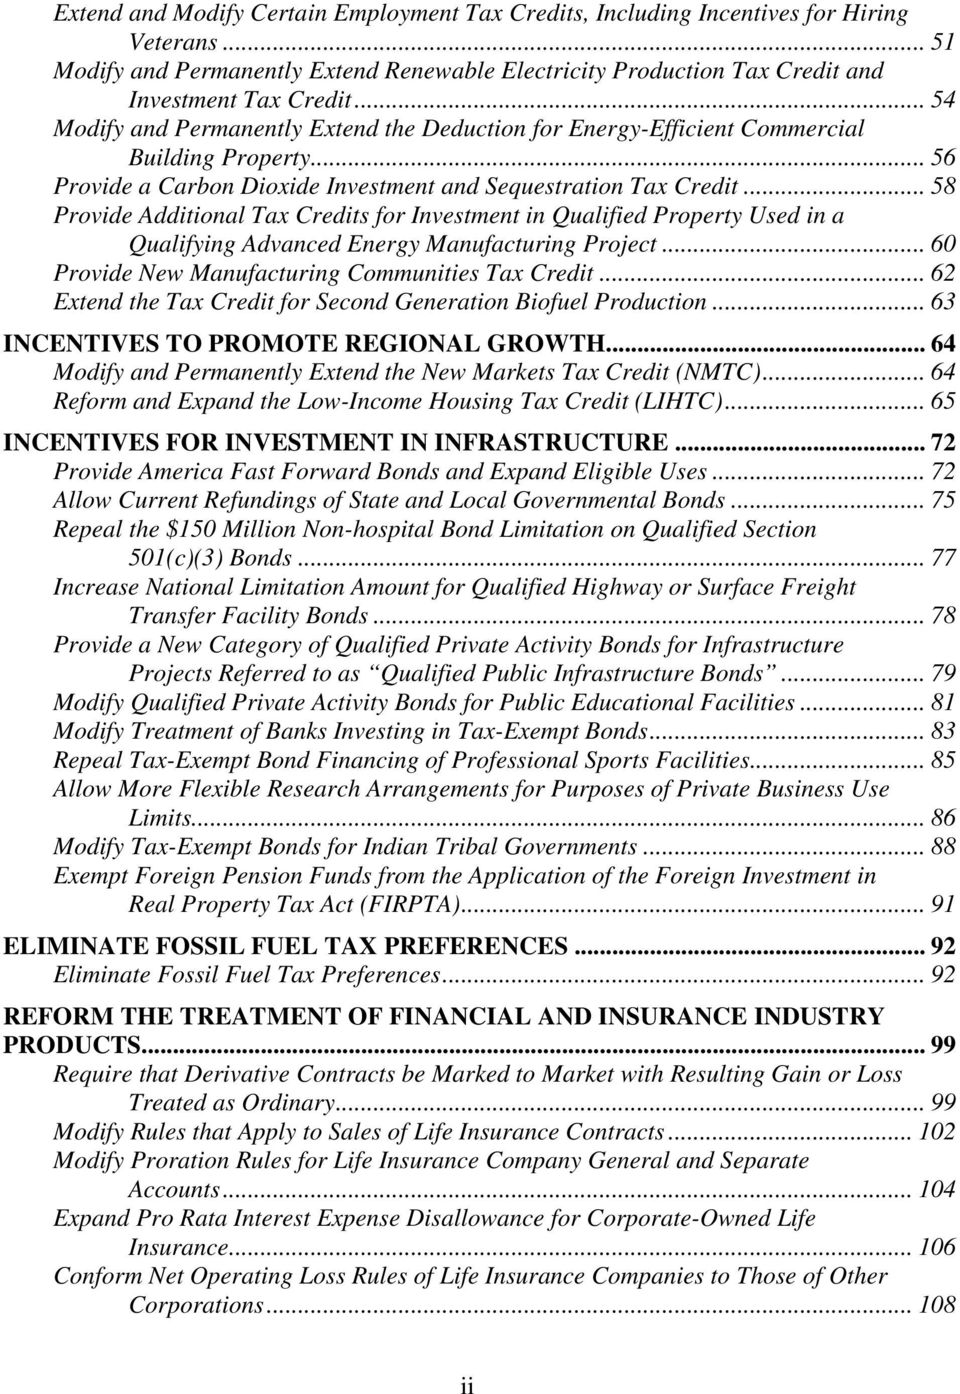 .. 58 Provide Additional Tax Credits for Investment in Qualified Property Used in a Qualifying Advanced Energy Manufacturing Project... 60 Provide New Manufacturing Communities Tax Credit.